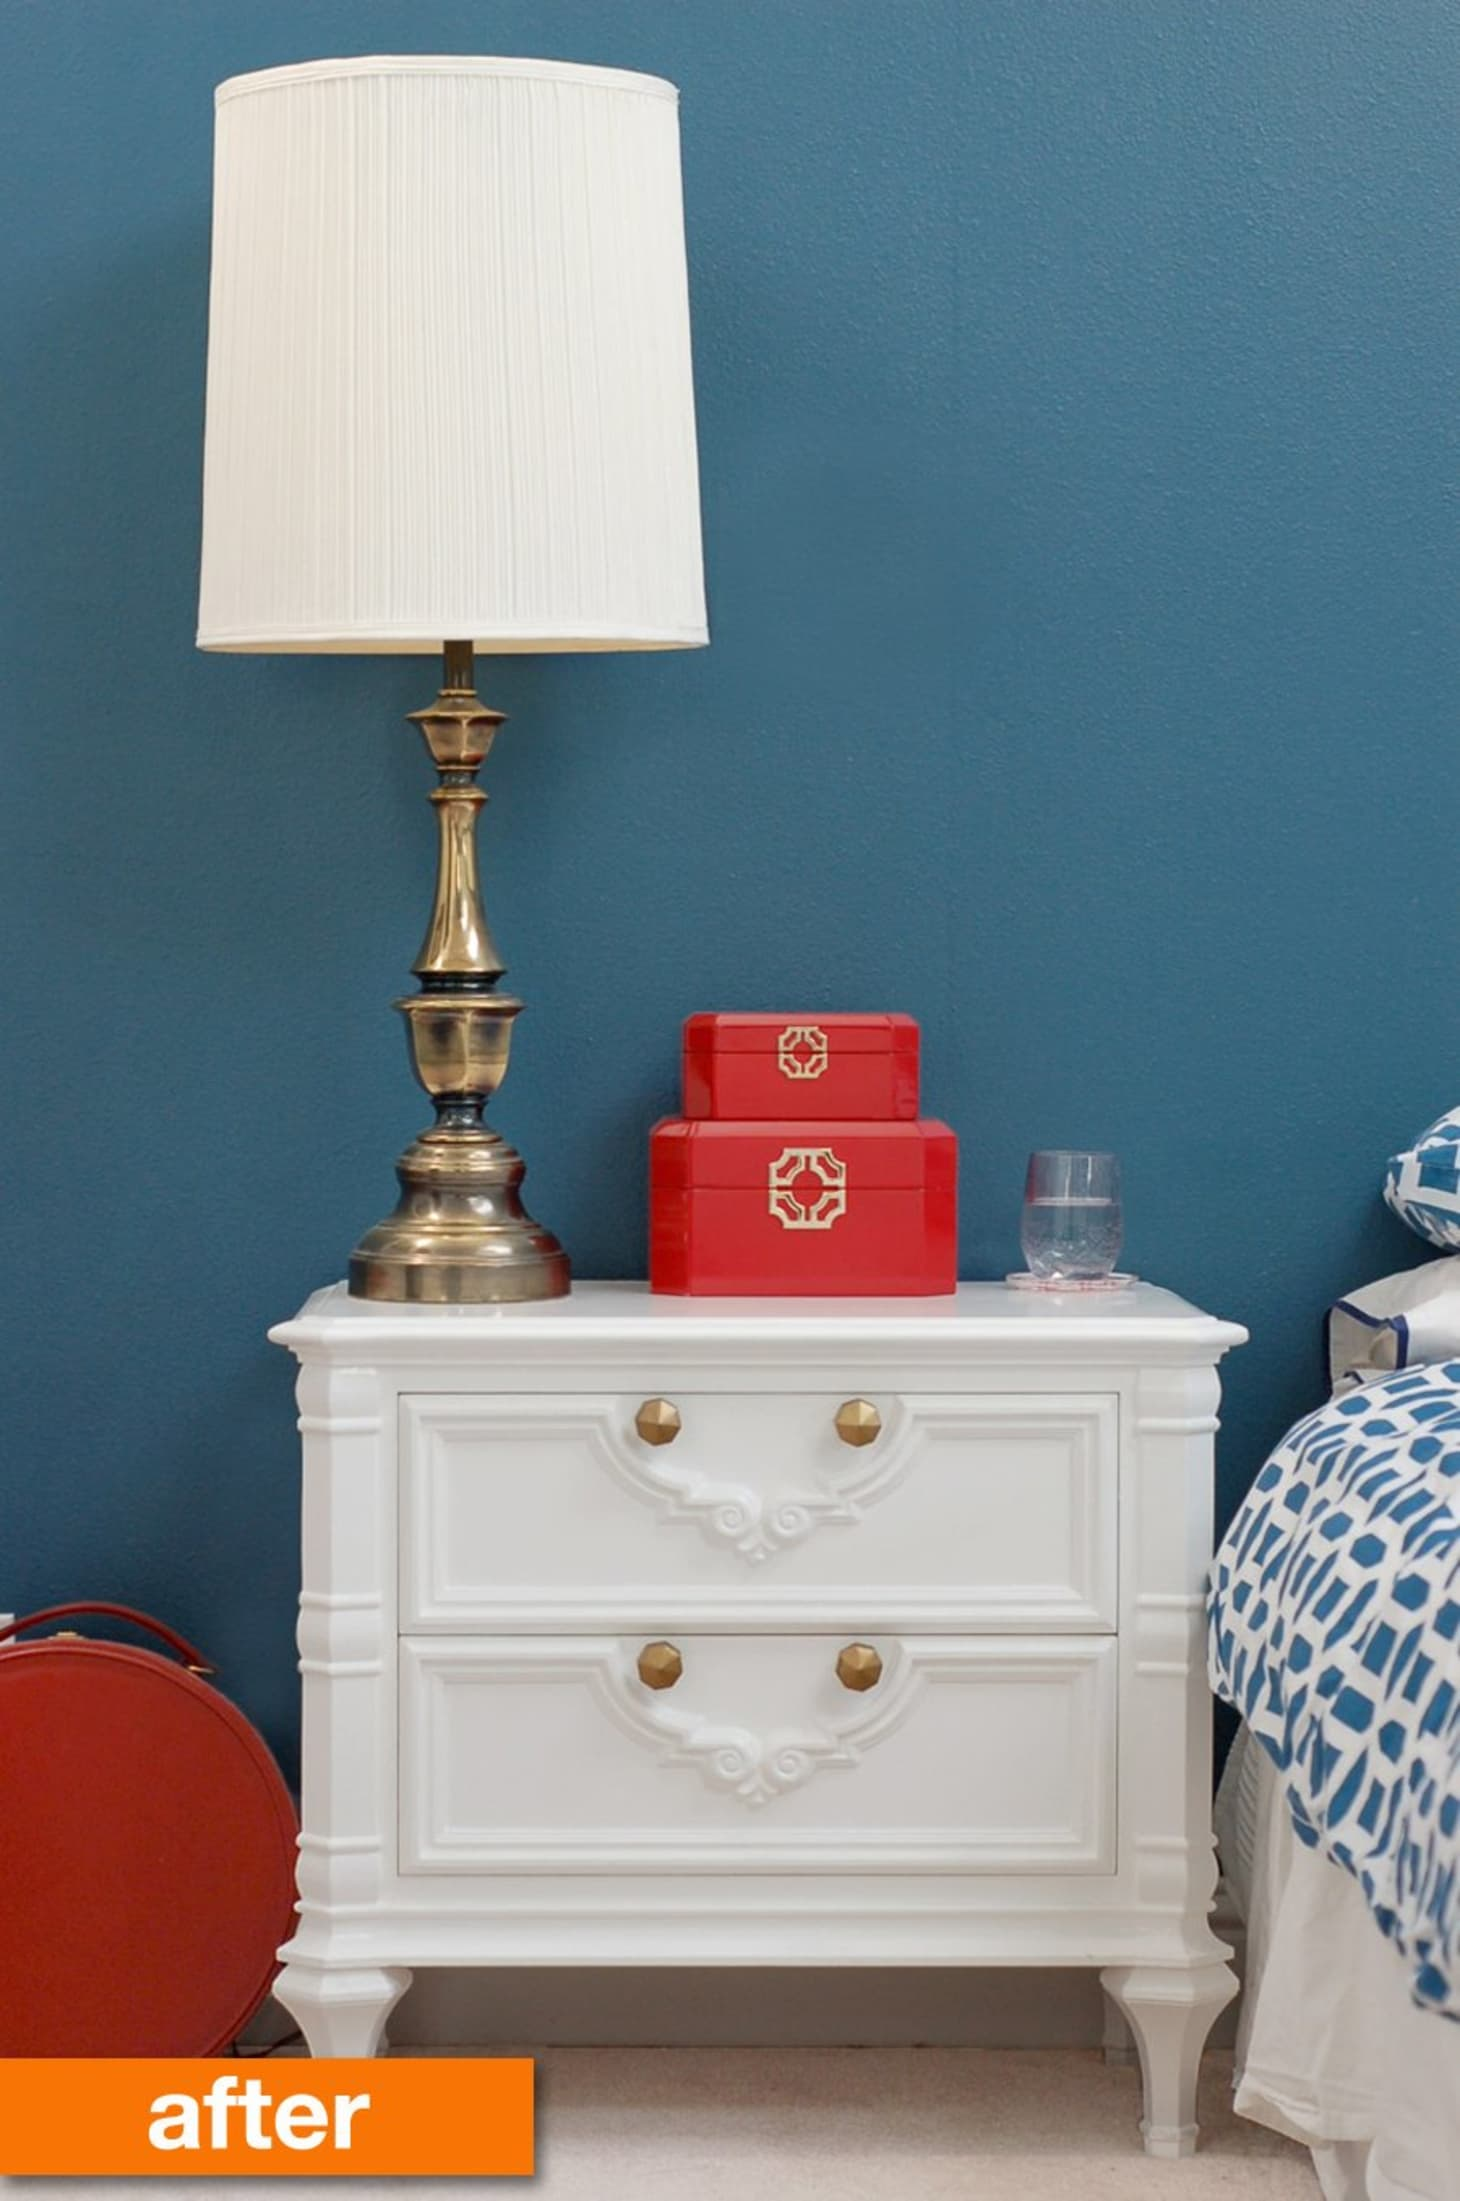 Makeover Your Nightstands With These Diy Ideas Apartment